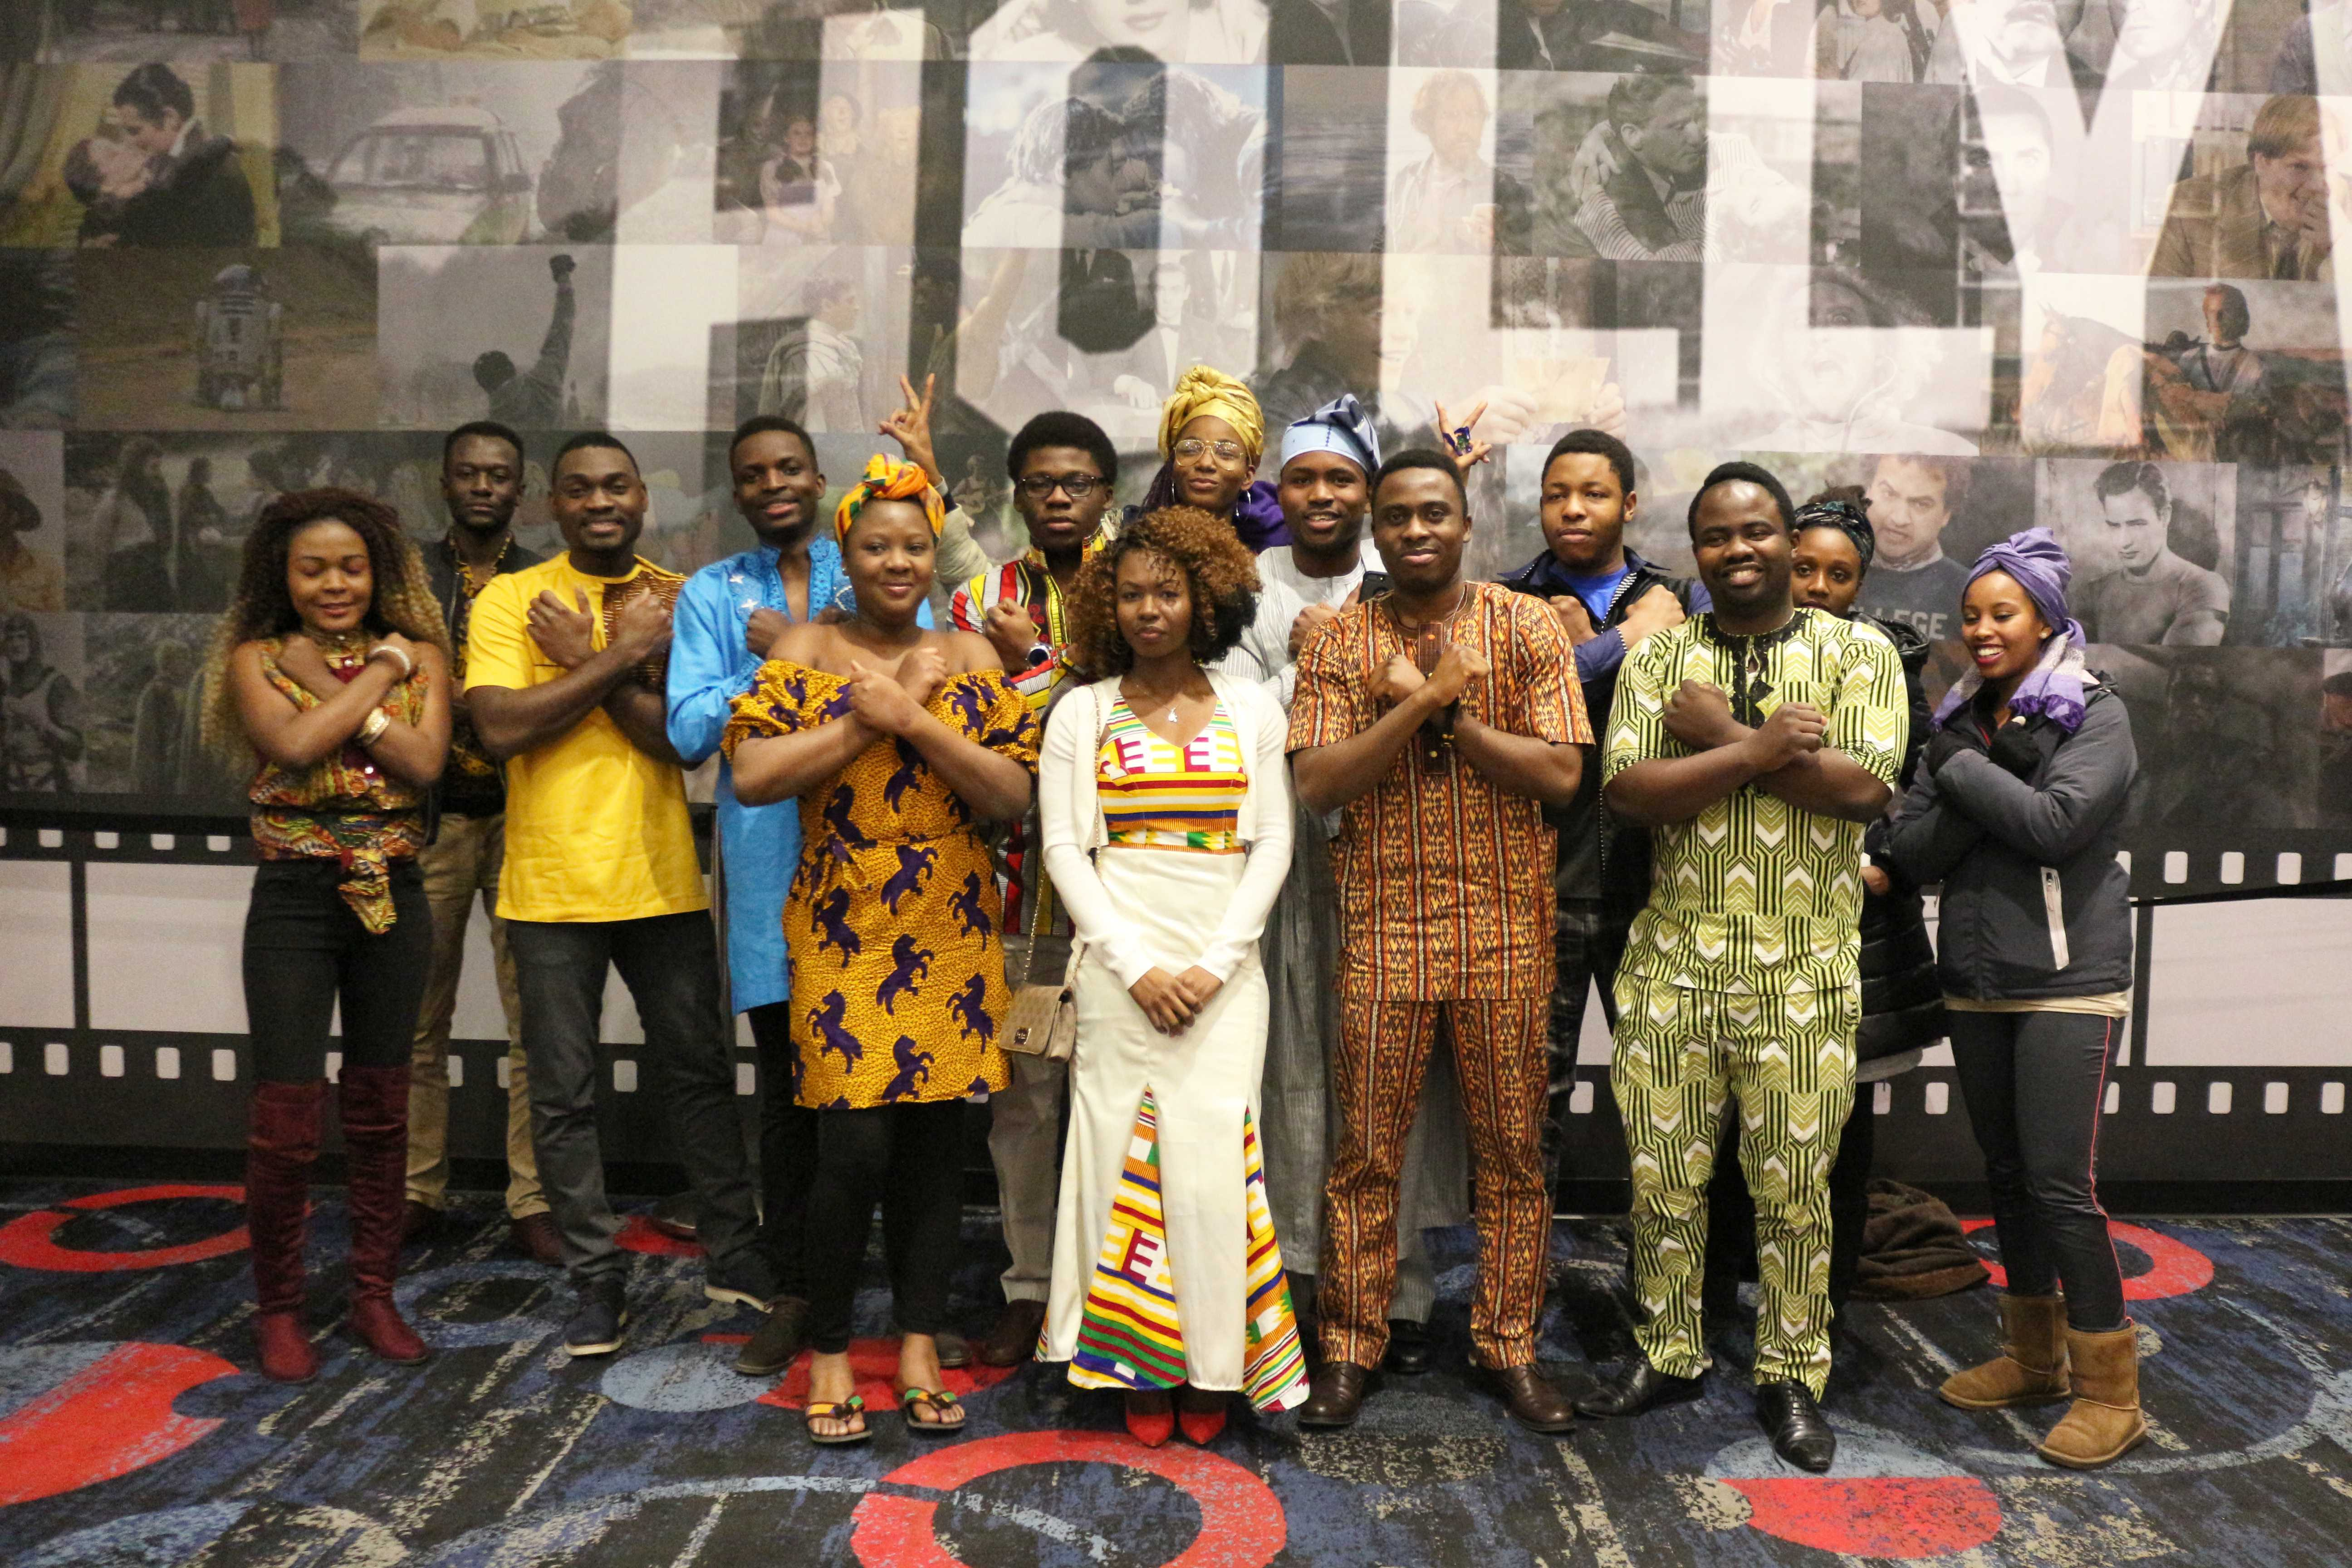 """IAN LACK Members of the ASA pose for photos after the showing of """"Black Panther."""" Many were dressed in traditional African clothing from their respective native countries."""